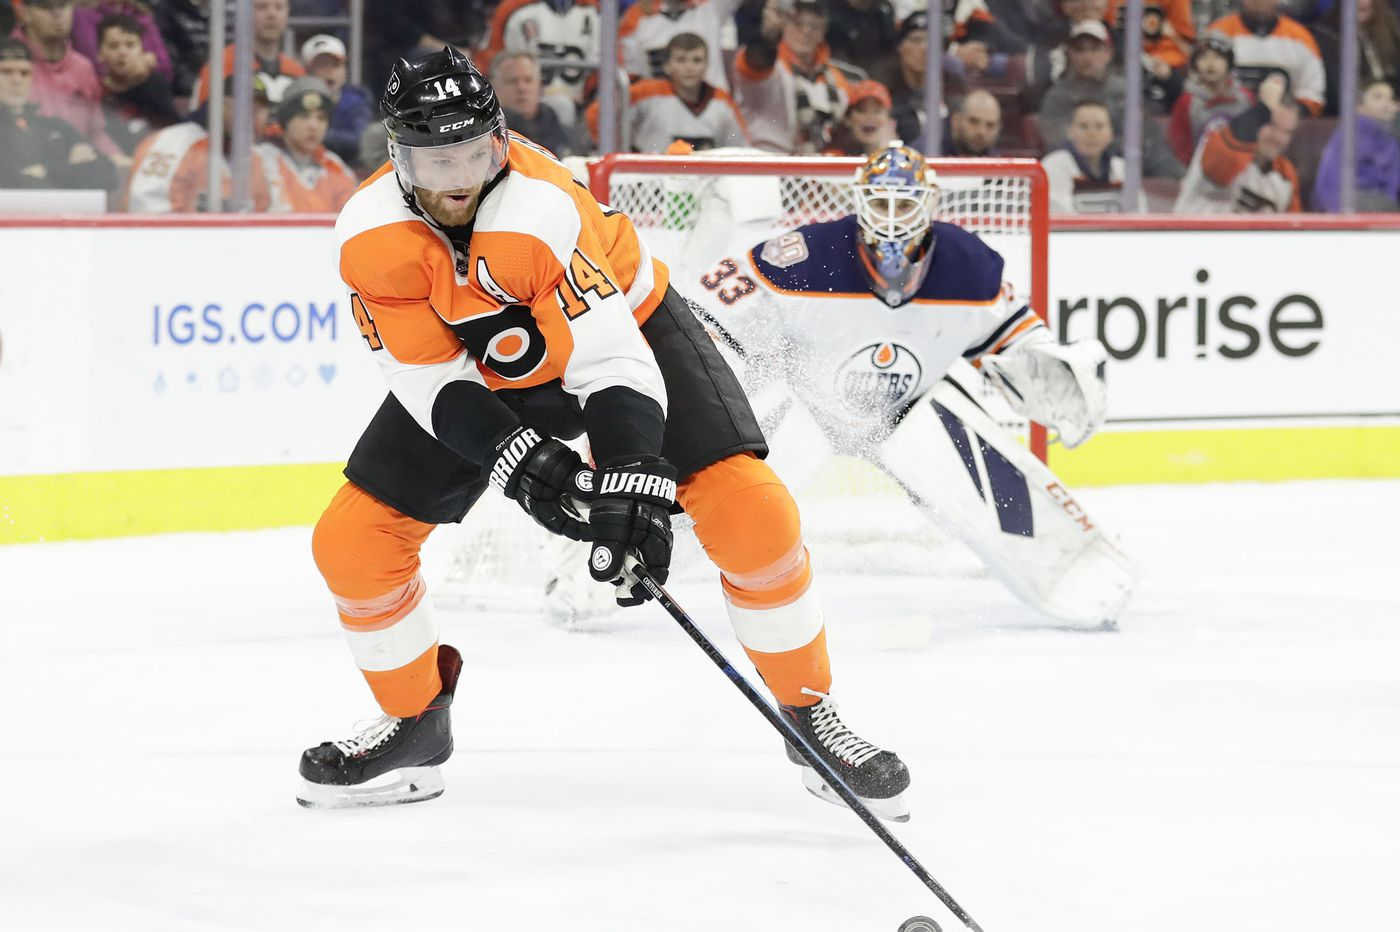 Surging Flyers, still facing long odds, could make NHL history if they reach Stanley Cup playoffs